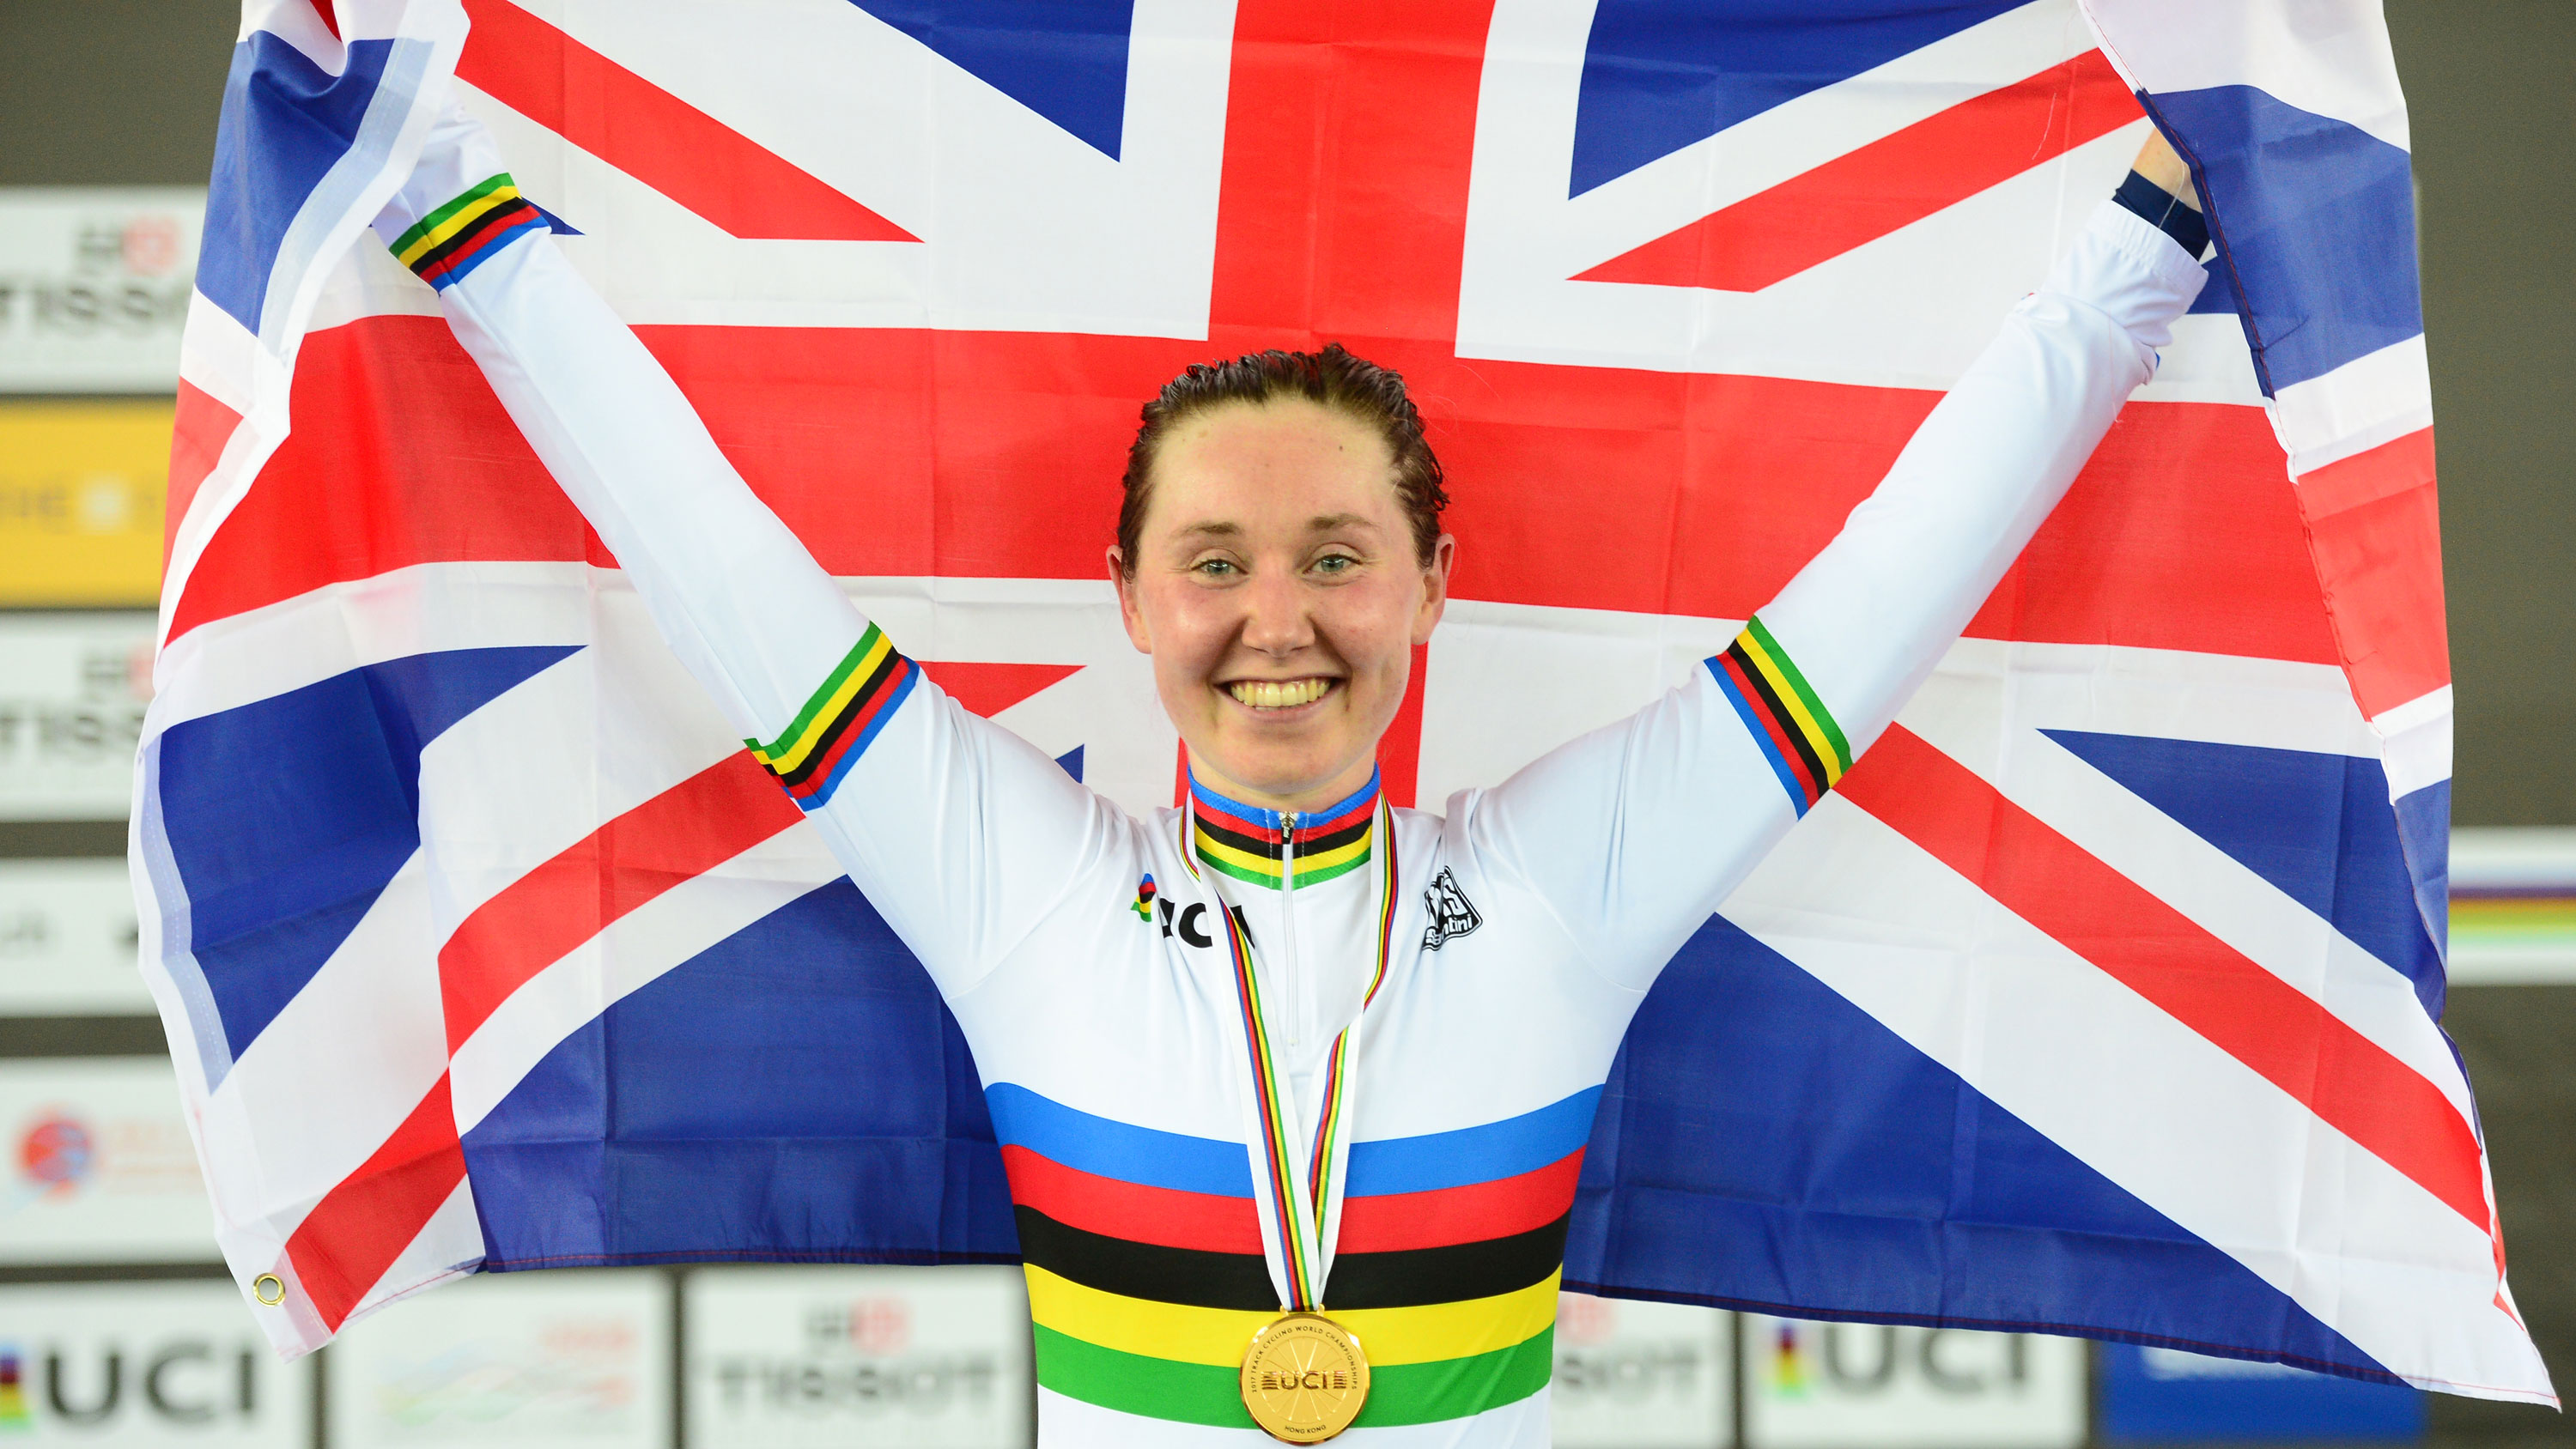 Great Britain Cycling Team's Katie Archibald